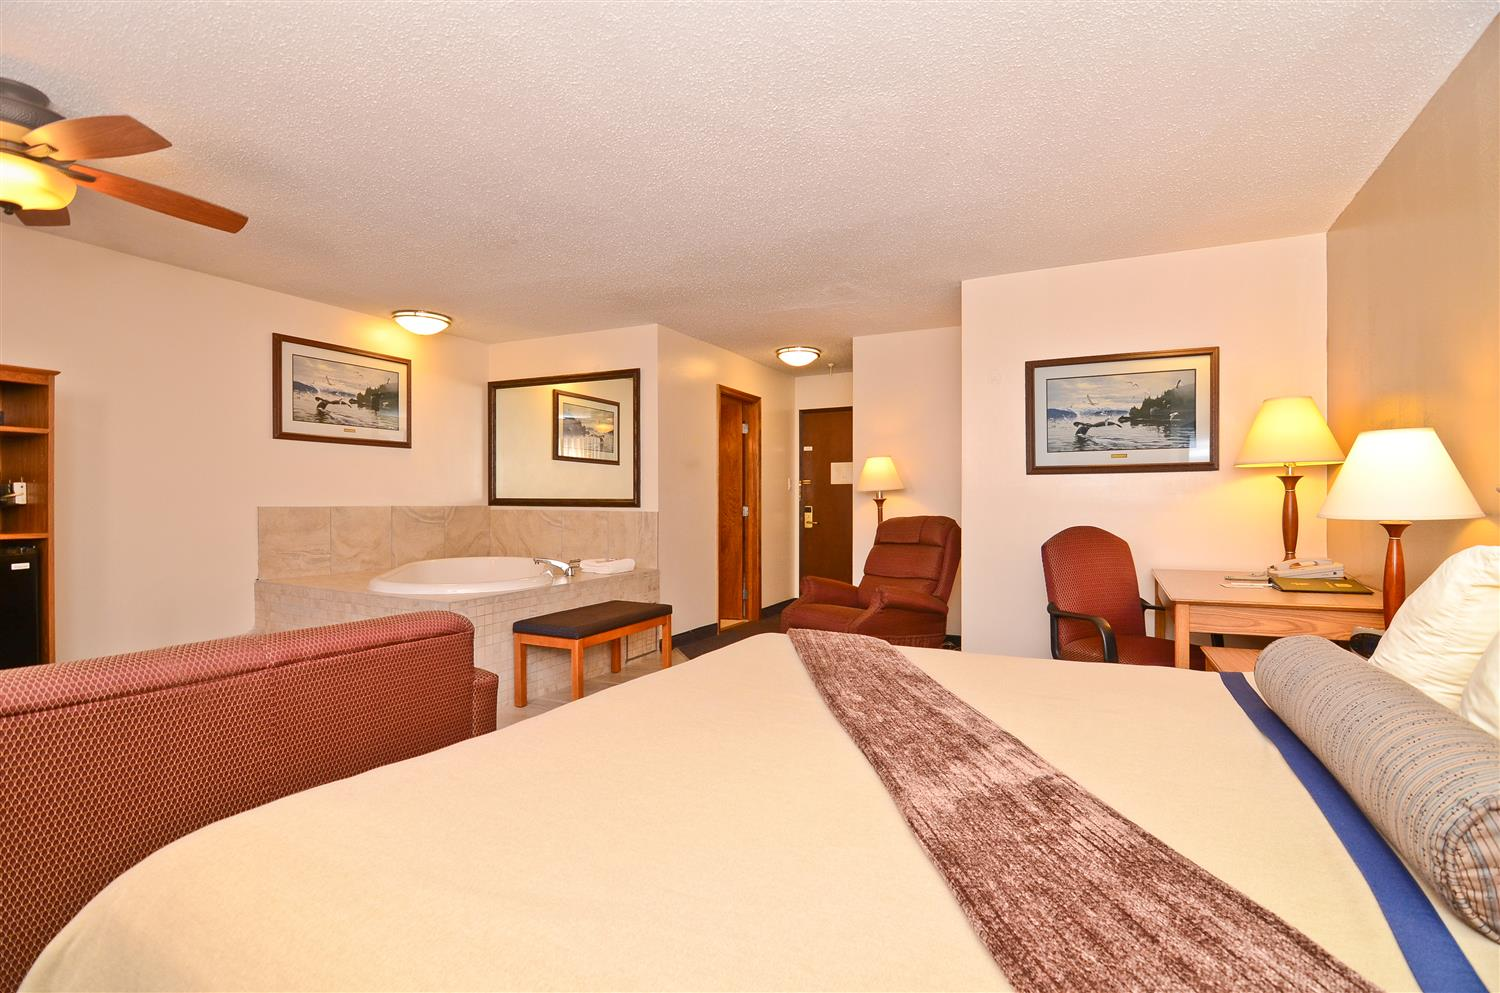 The Honeymoon Suite Is Perfect For A Weekend Getaway